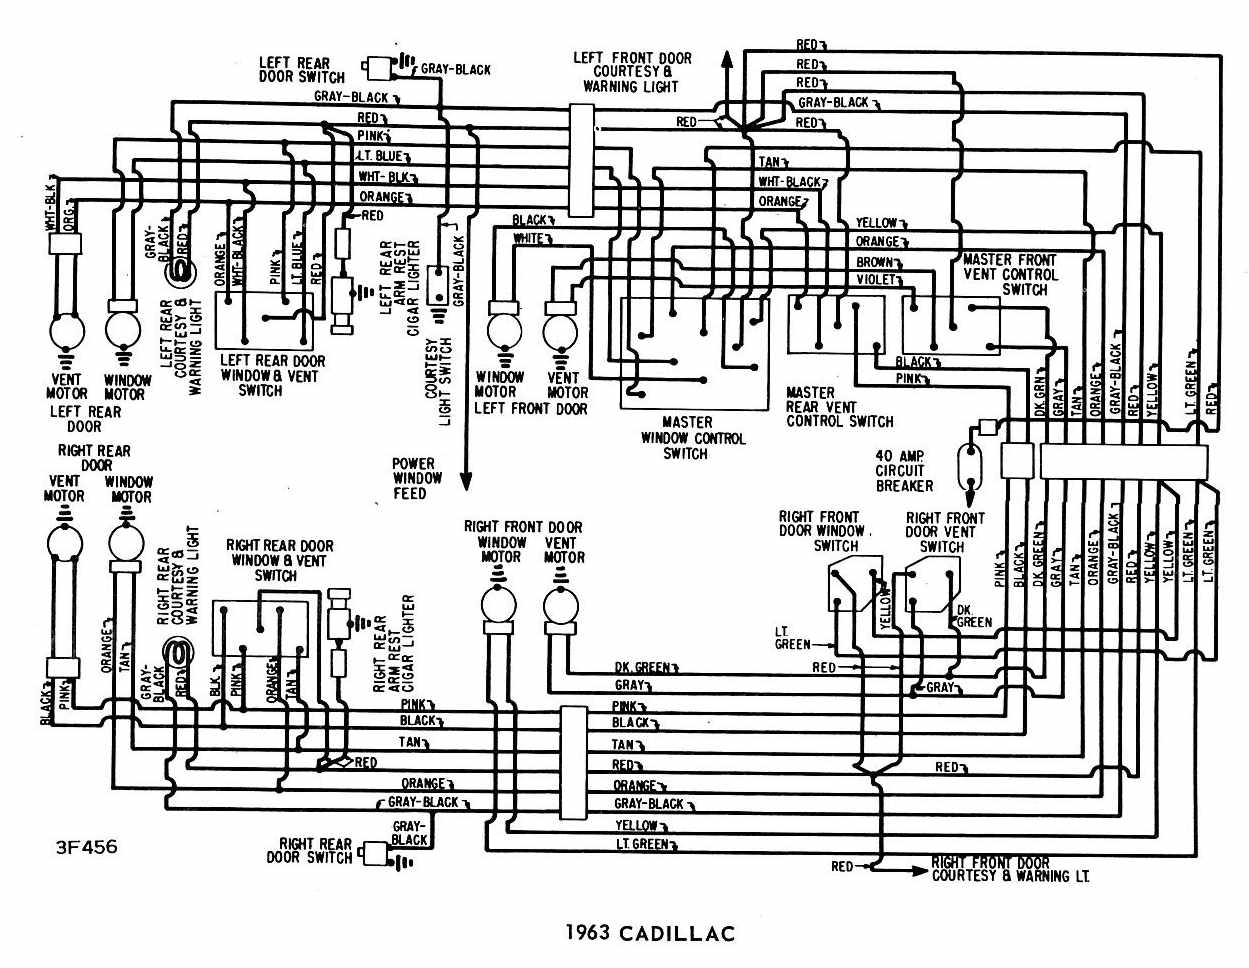 1955 cadillac series 62 wiring diagram example electrical wiring rh olkha co 1952 Cadillac Series 62 1957 Cadillac Series 62